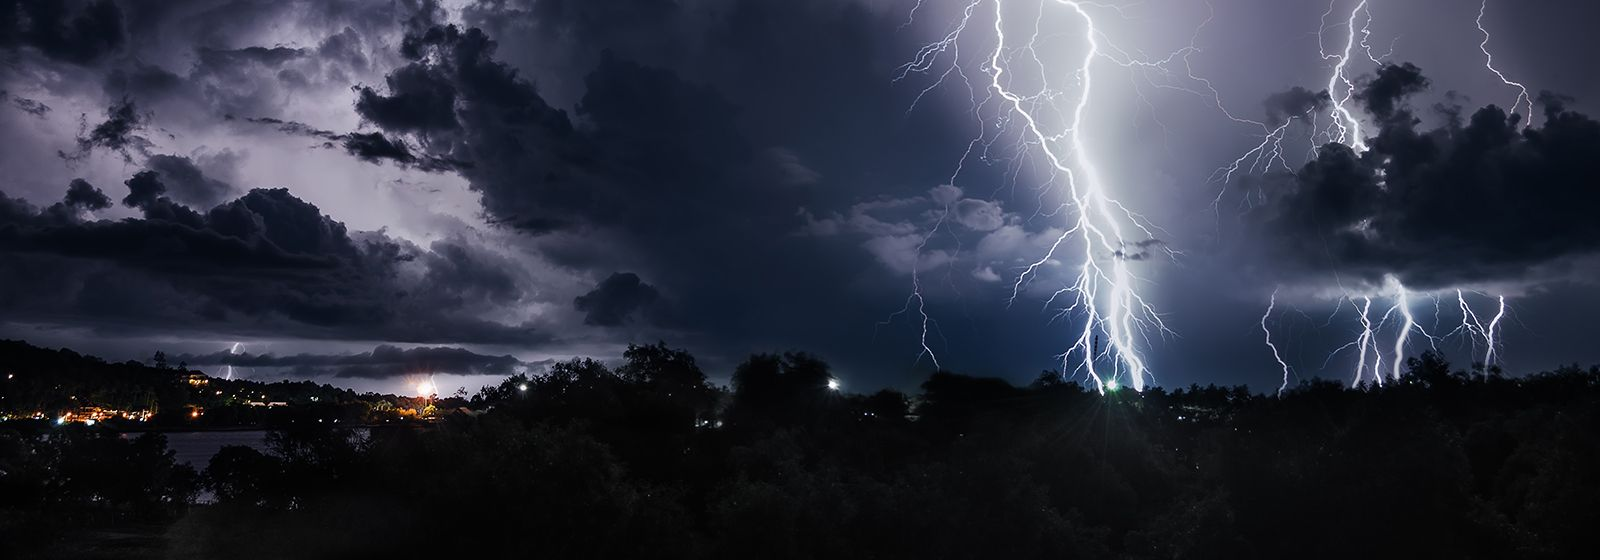 10 things to do to prepare for a storm